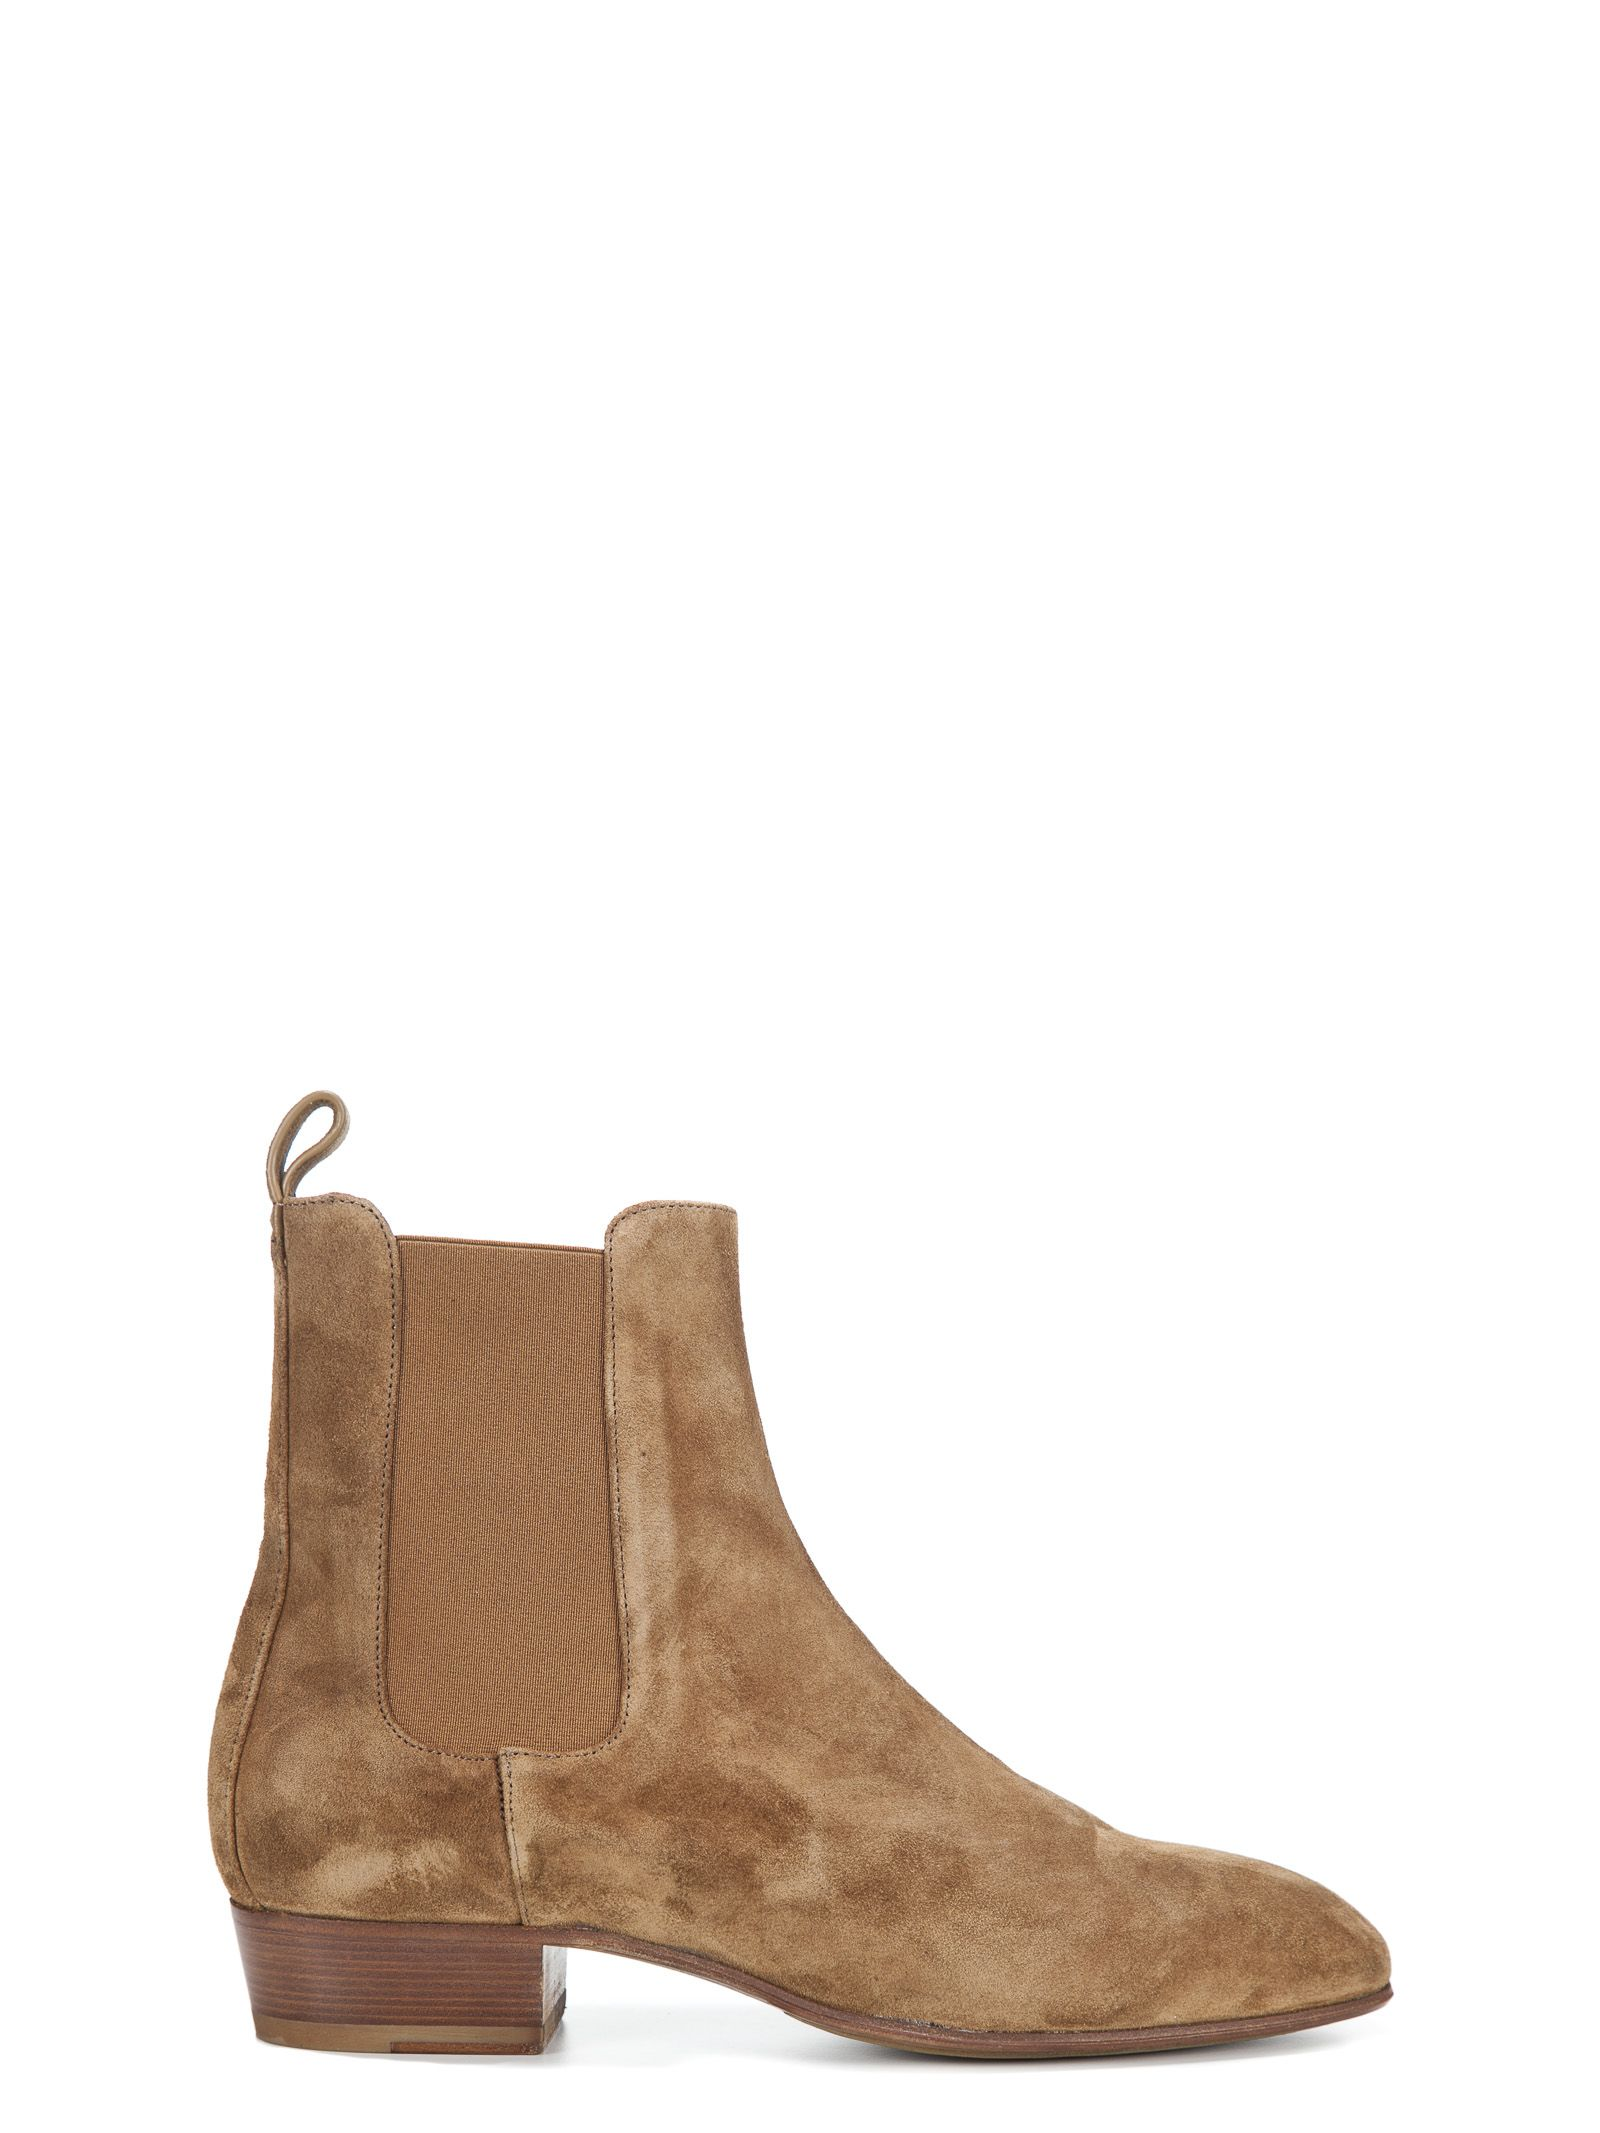 Cheap Websites Buy Cheap Best Place FOOTWEAR - Ankle boots Represent Fast Delivery Online Best Prices Really Cheap Online ULLsuuCpd